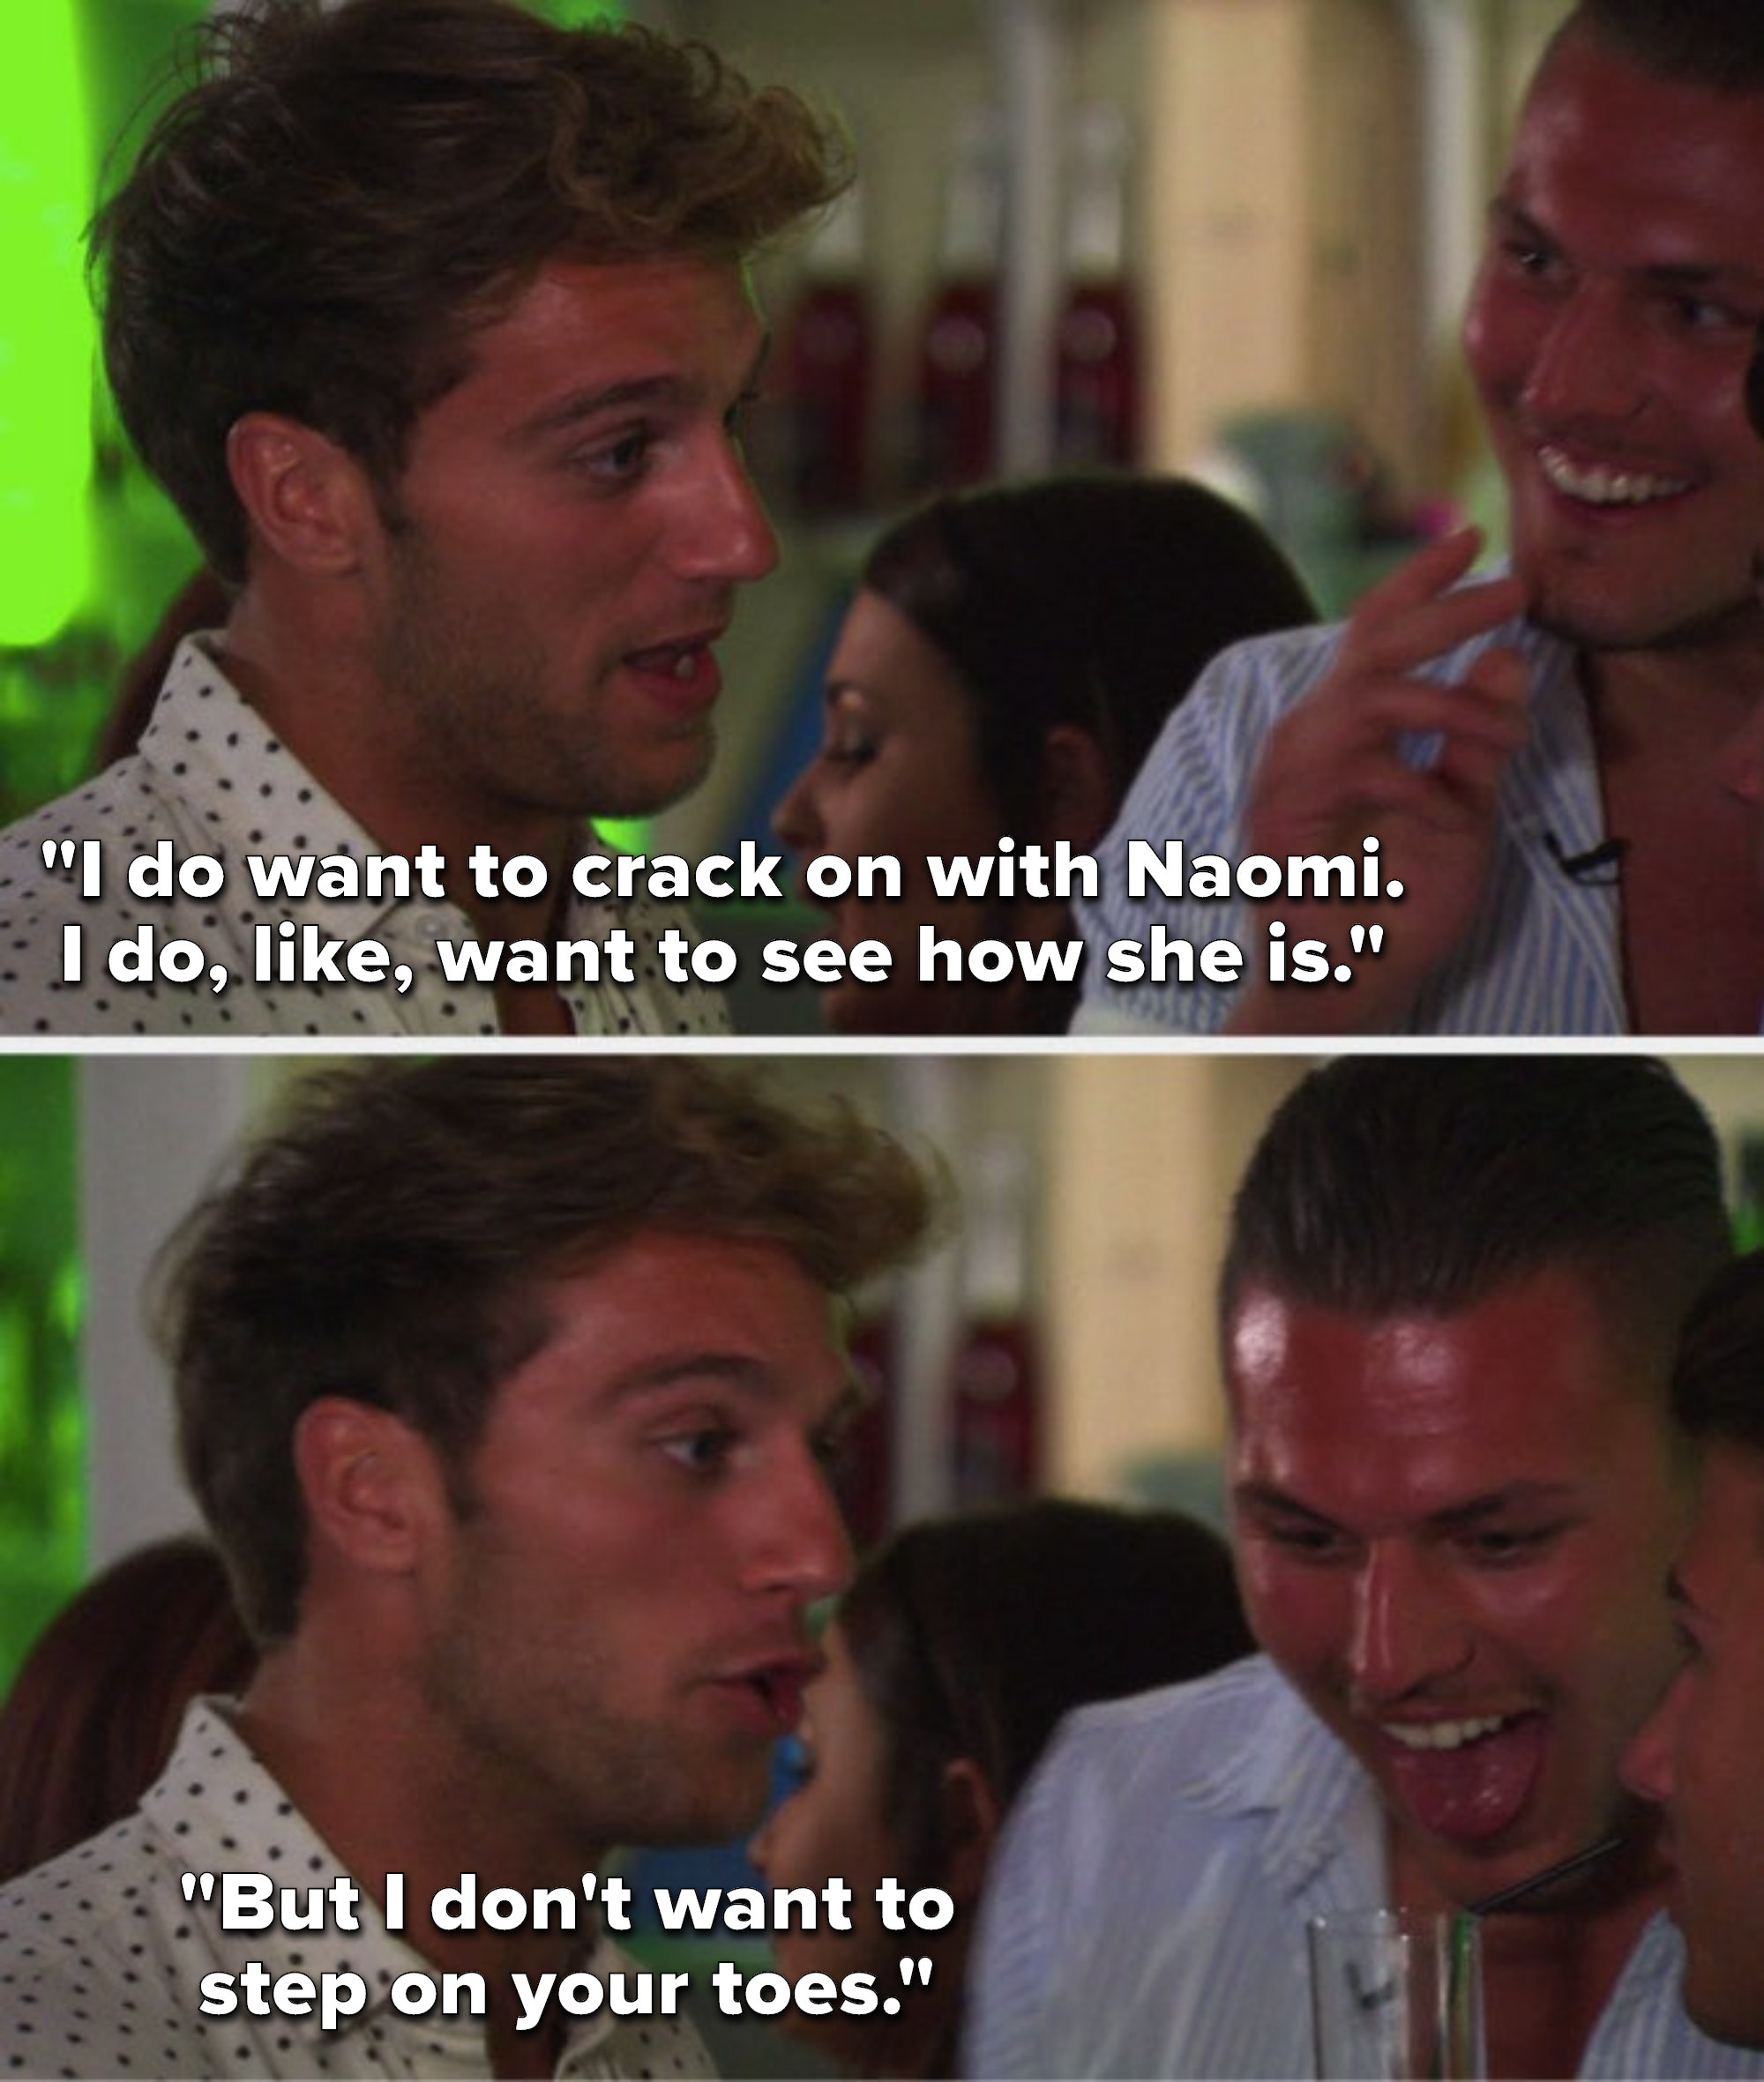 """Max says,""""I do want to crack on with Naomi; I do, like, want to see how she is, but I don't want to step on your toes"""""""